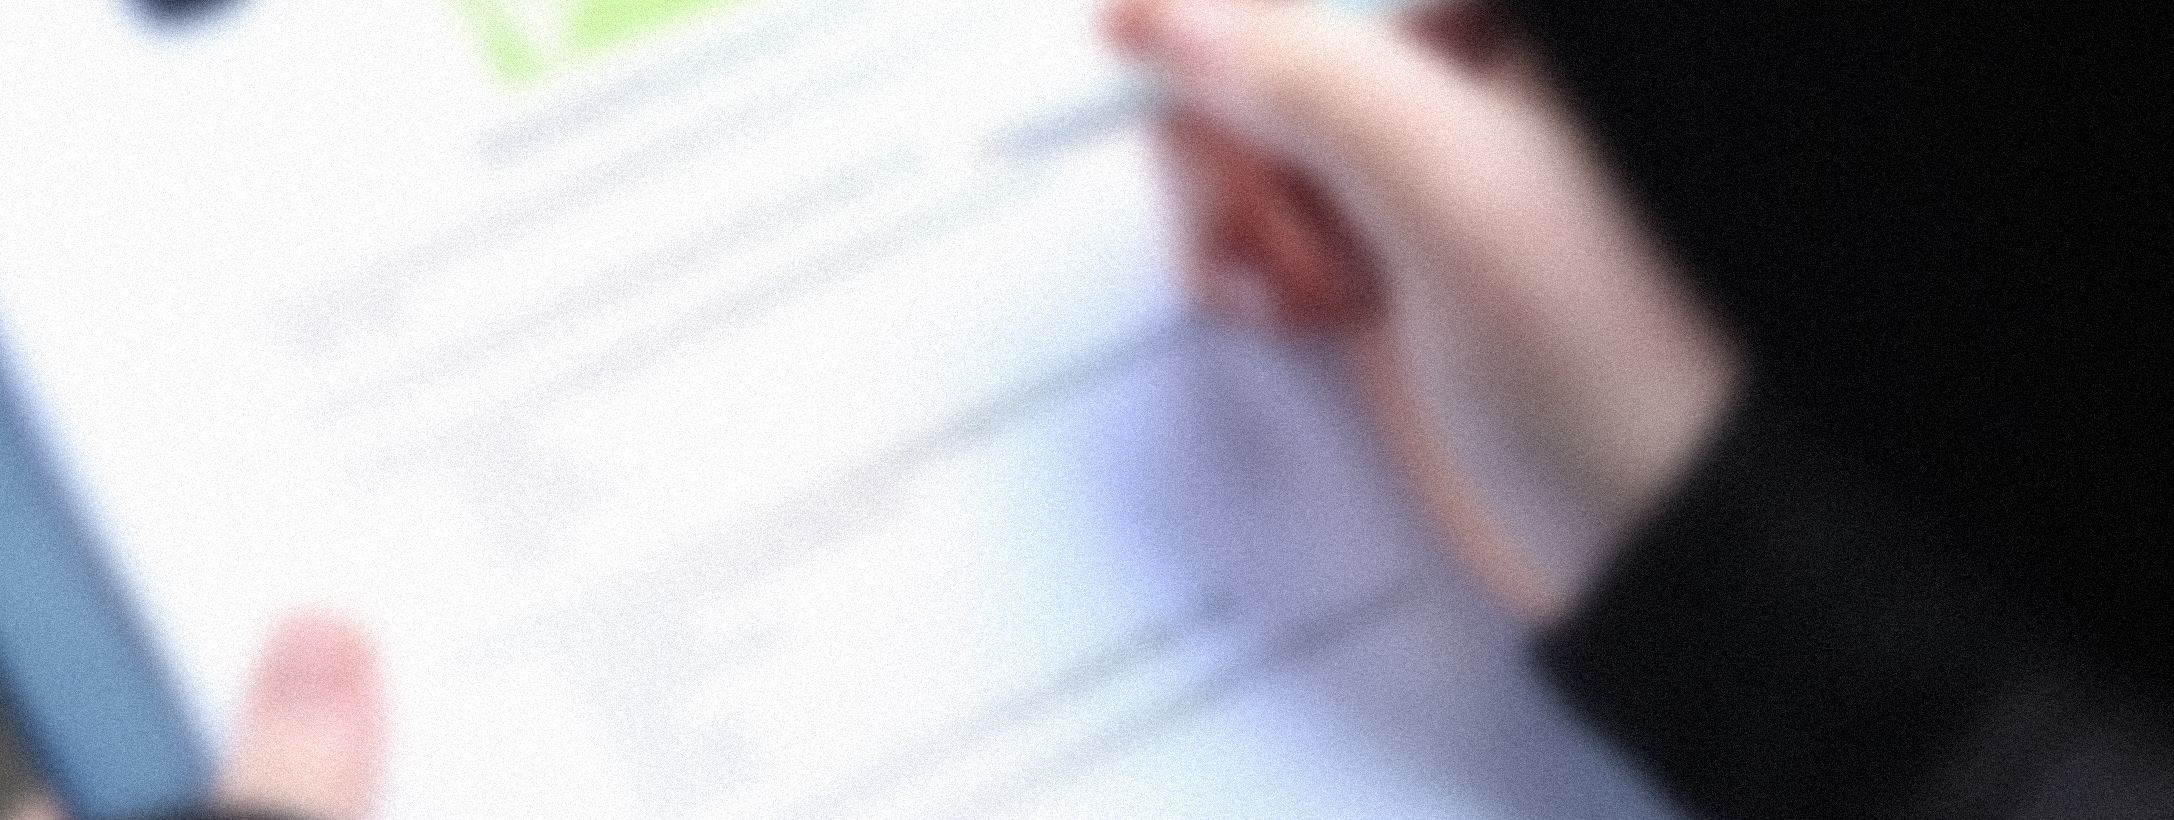 Photograph of a hand filling in a survey with a pen